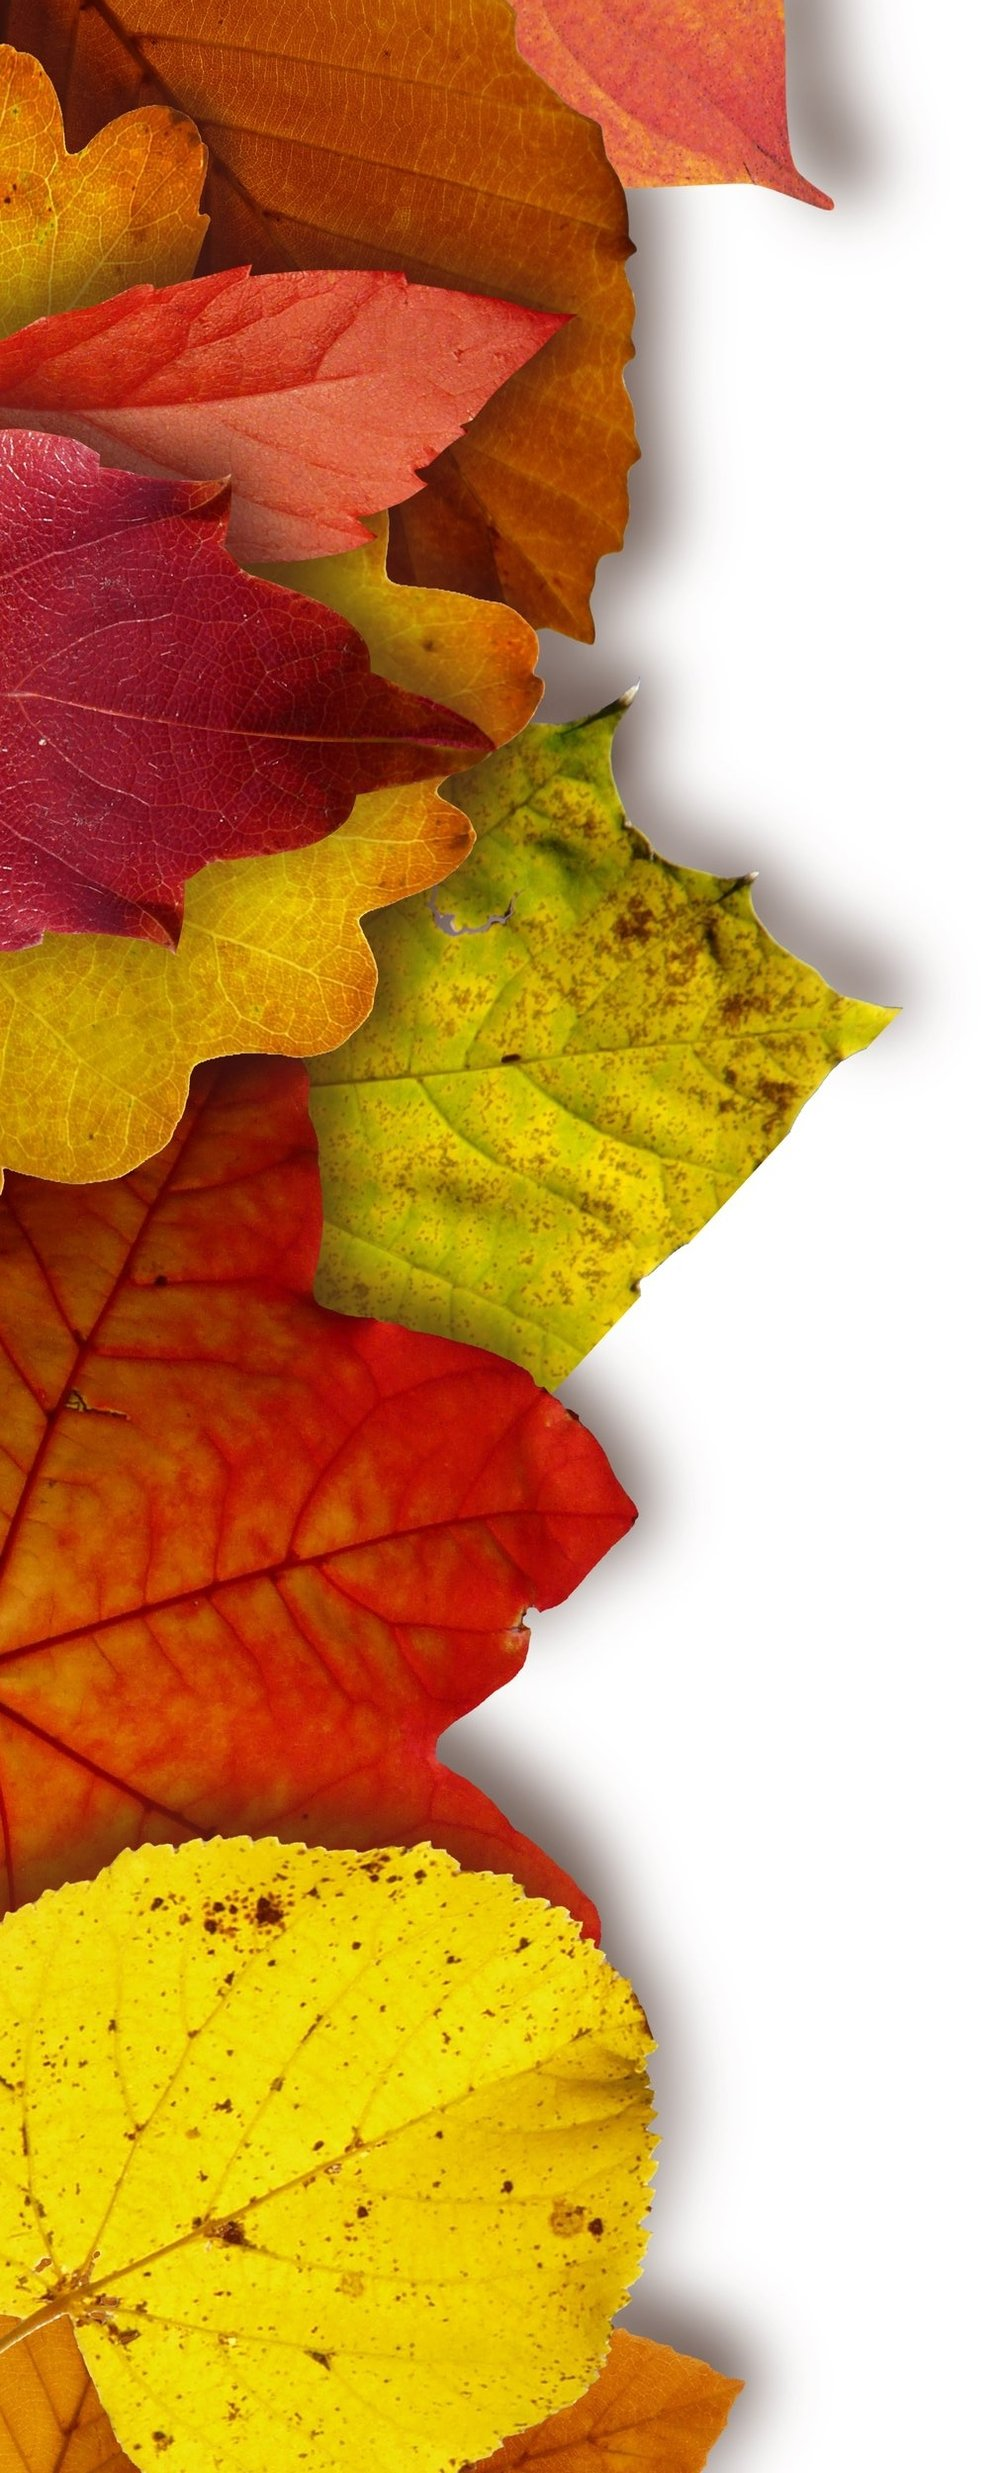 leaves-colorful-color-yellow-64732.jpg